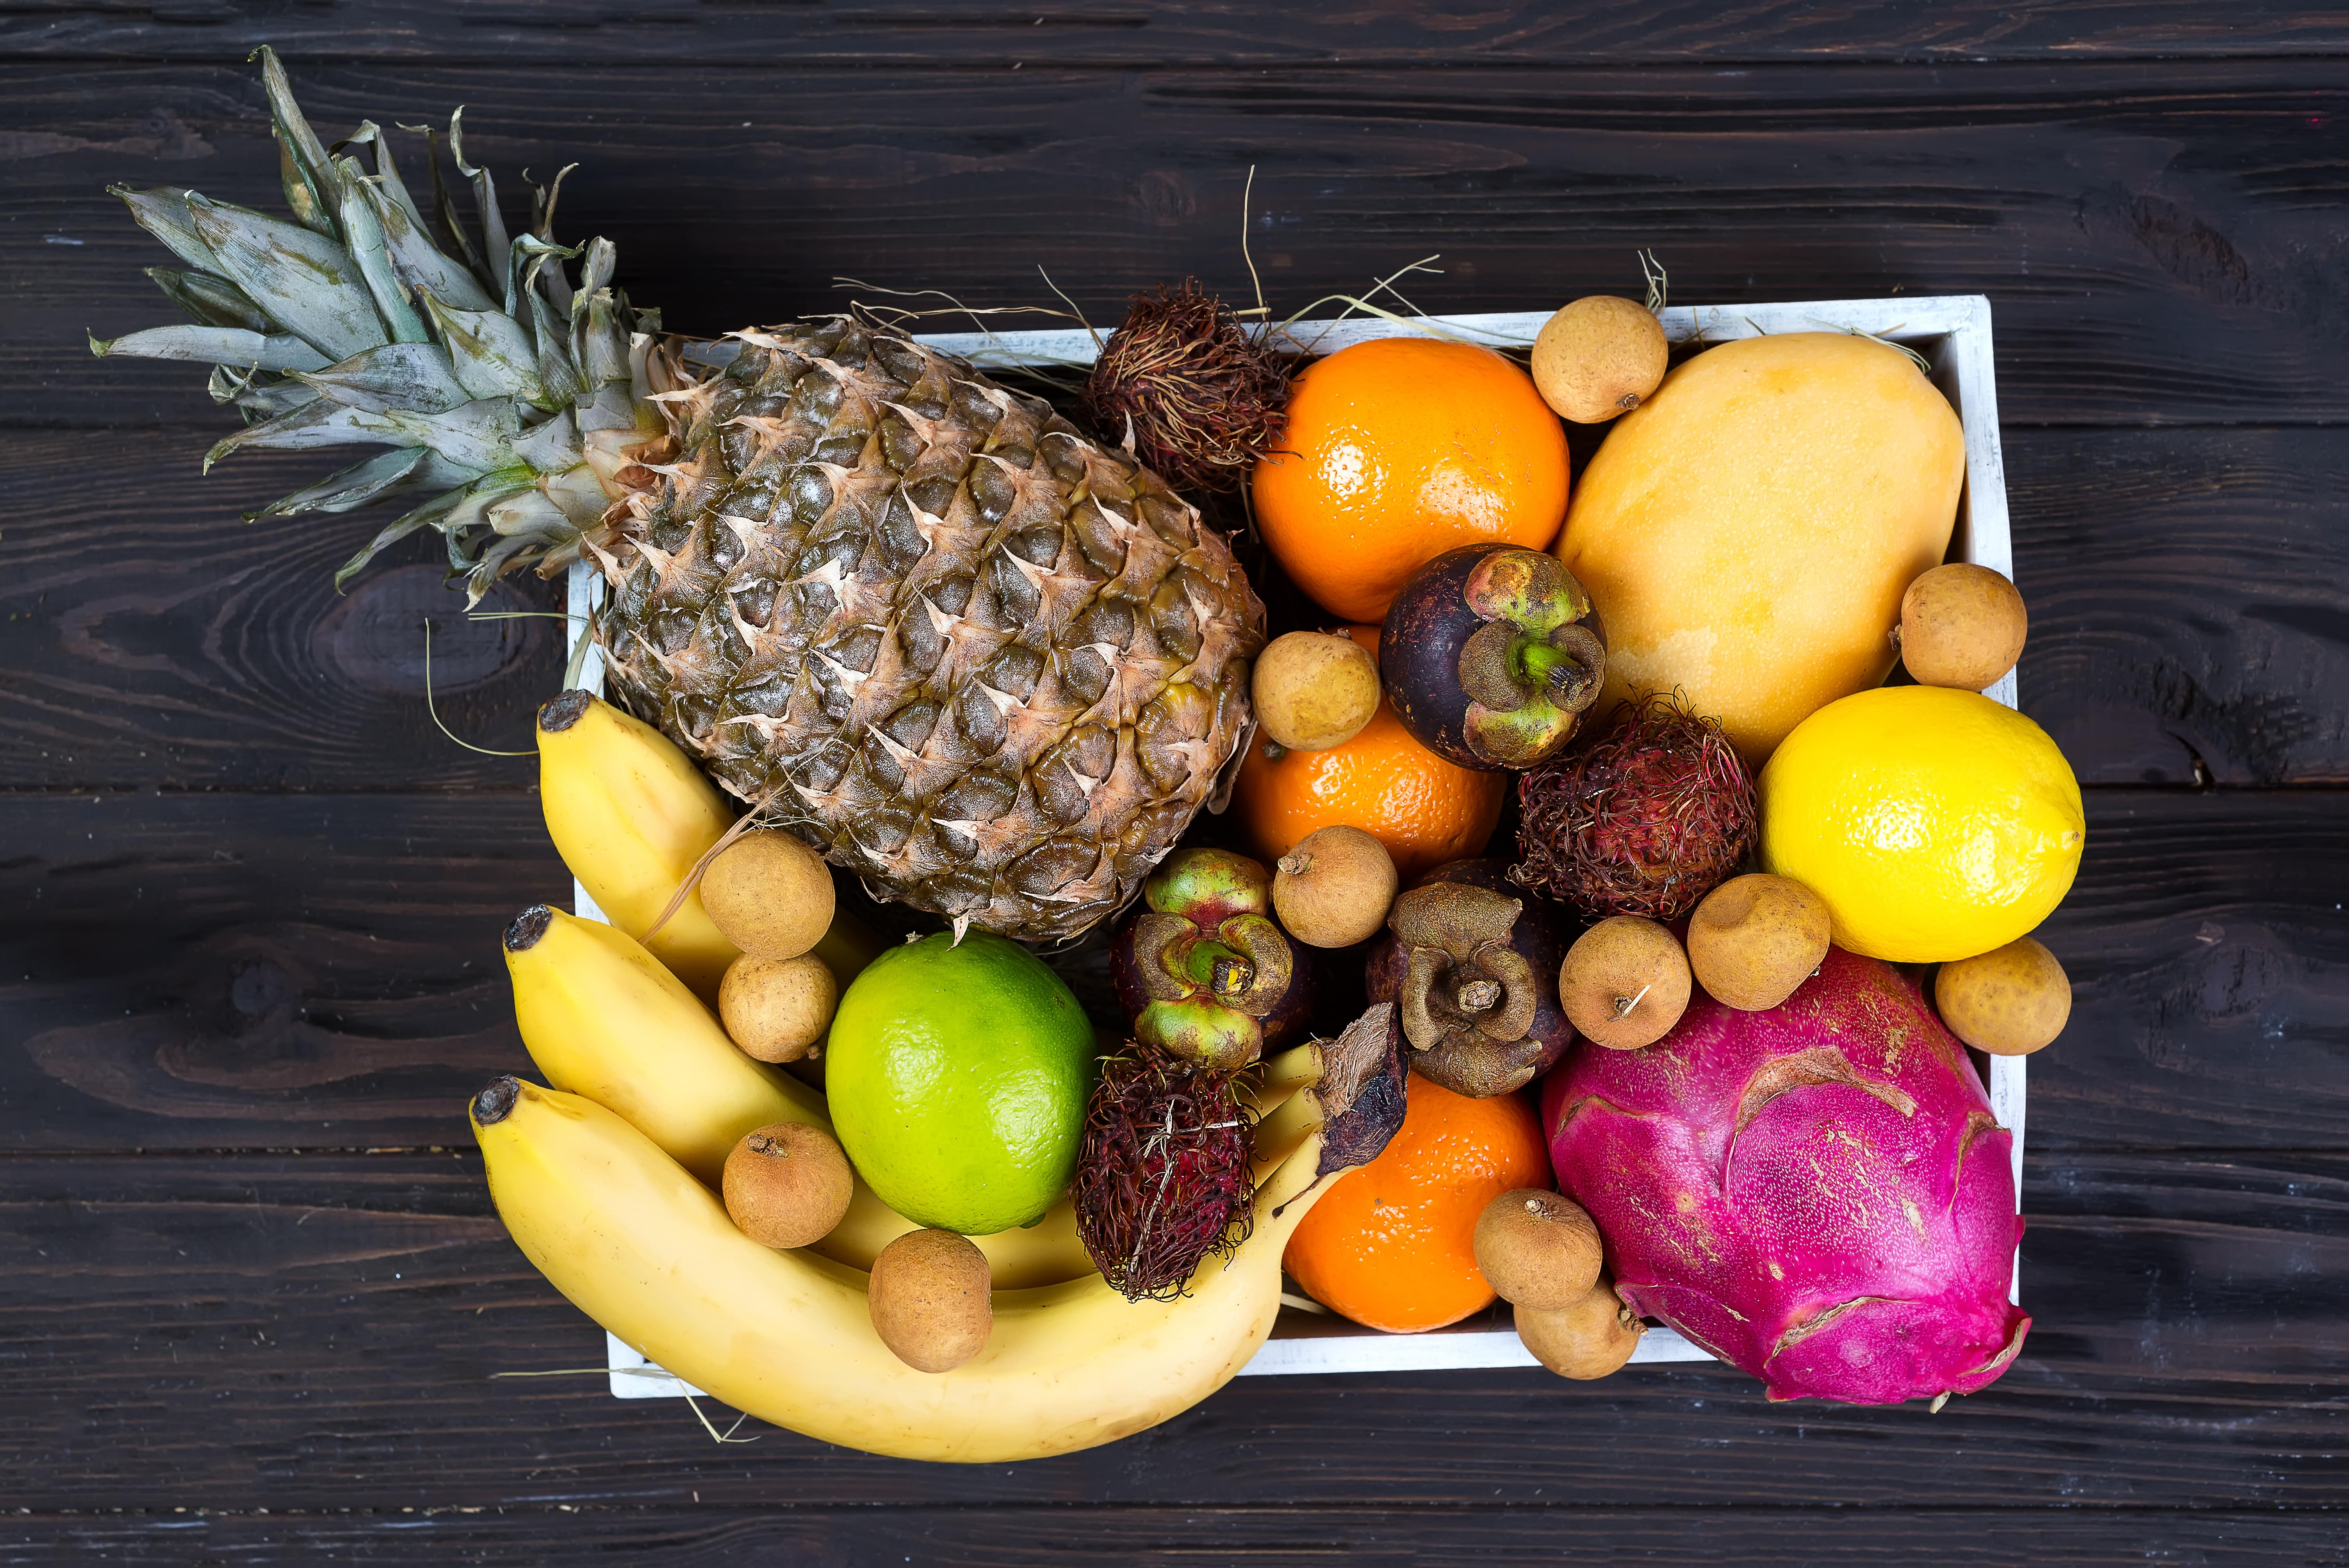 fresh-exotic-fruits-in-a-wooden-box-top-view-with--L3576Z2-min